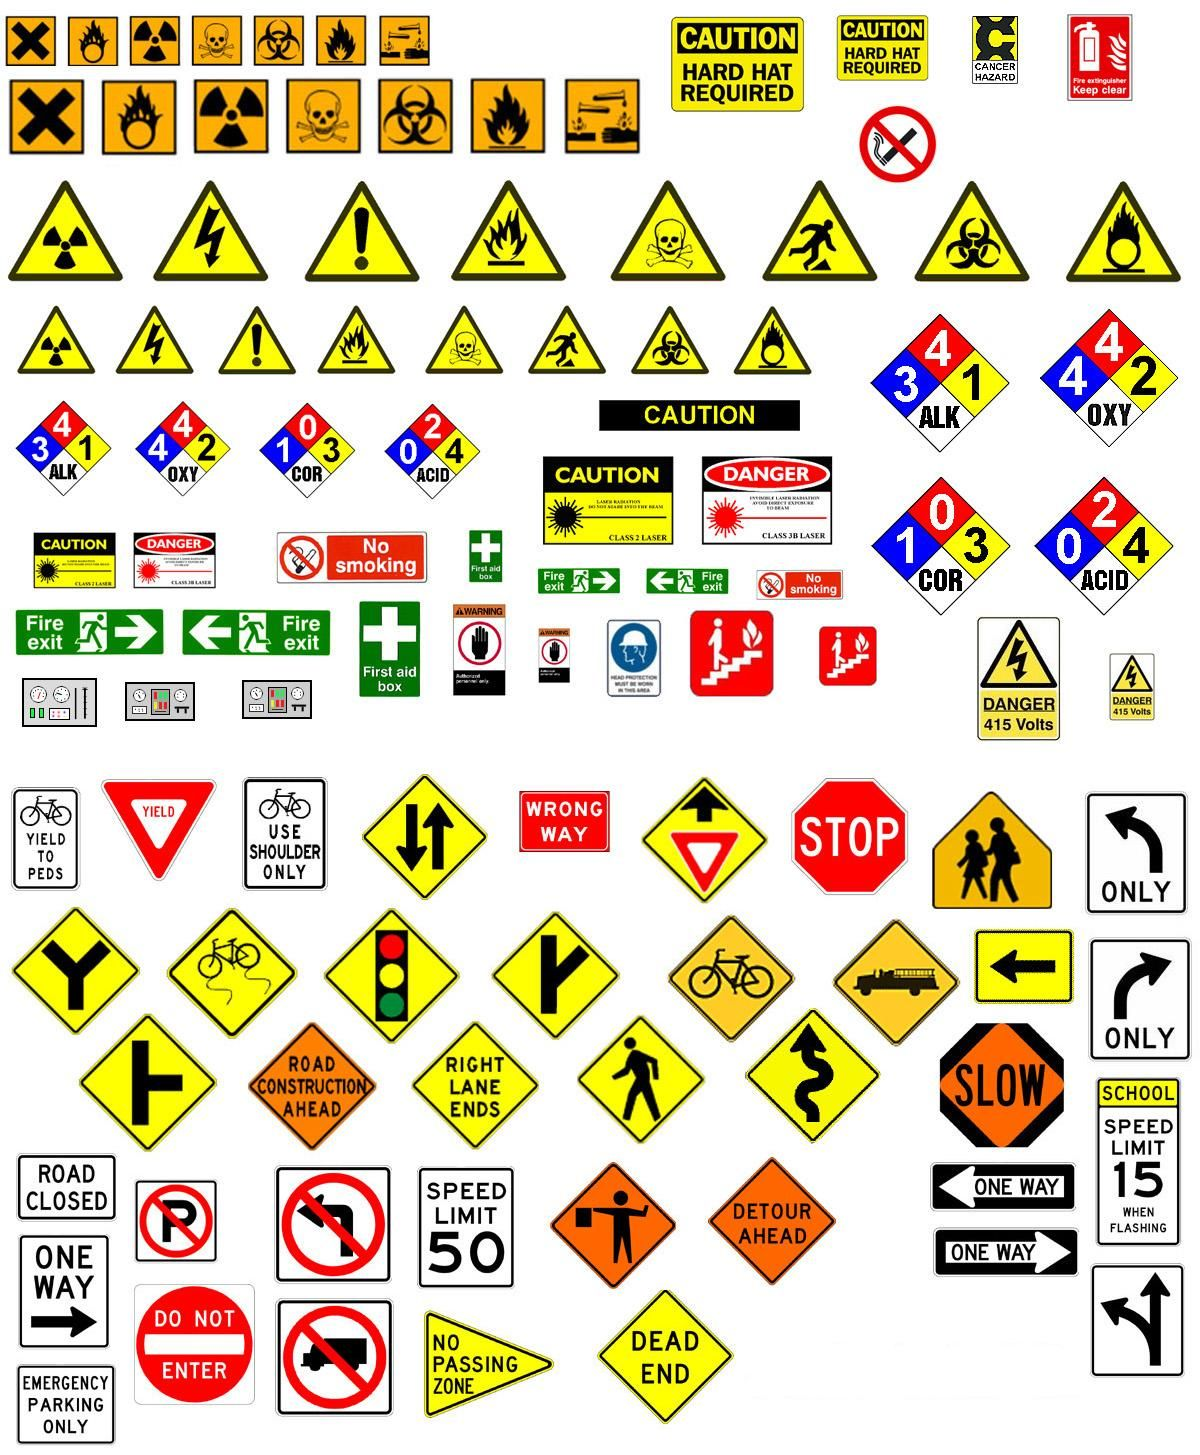 Hazardsignsg 12001455 pixels geometry pinterest ideal for your modern or post apocalyptic city terrain these road and hazard signs are great biocorpaavc